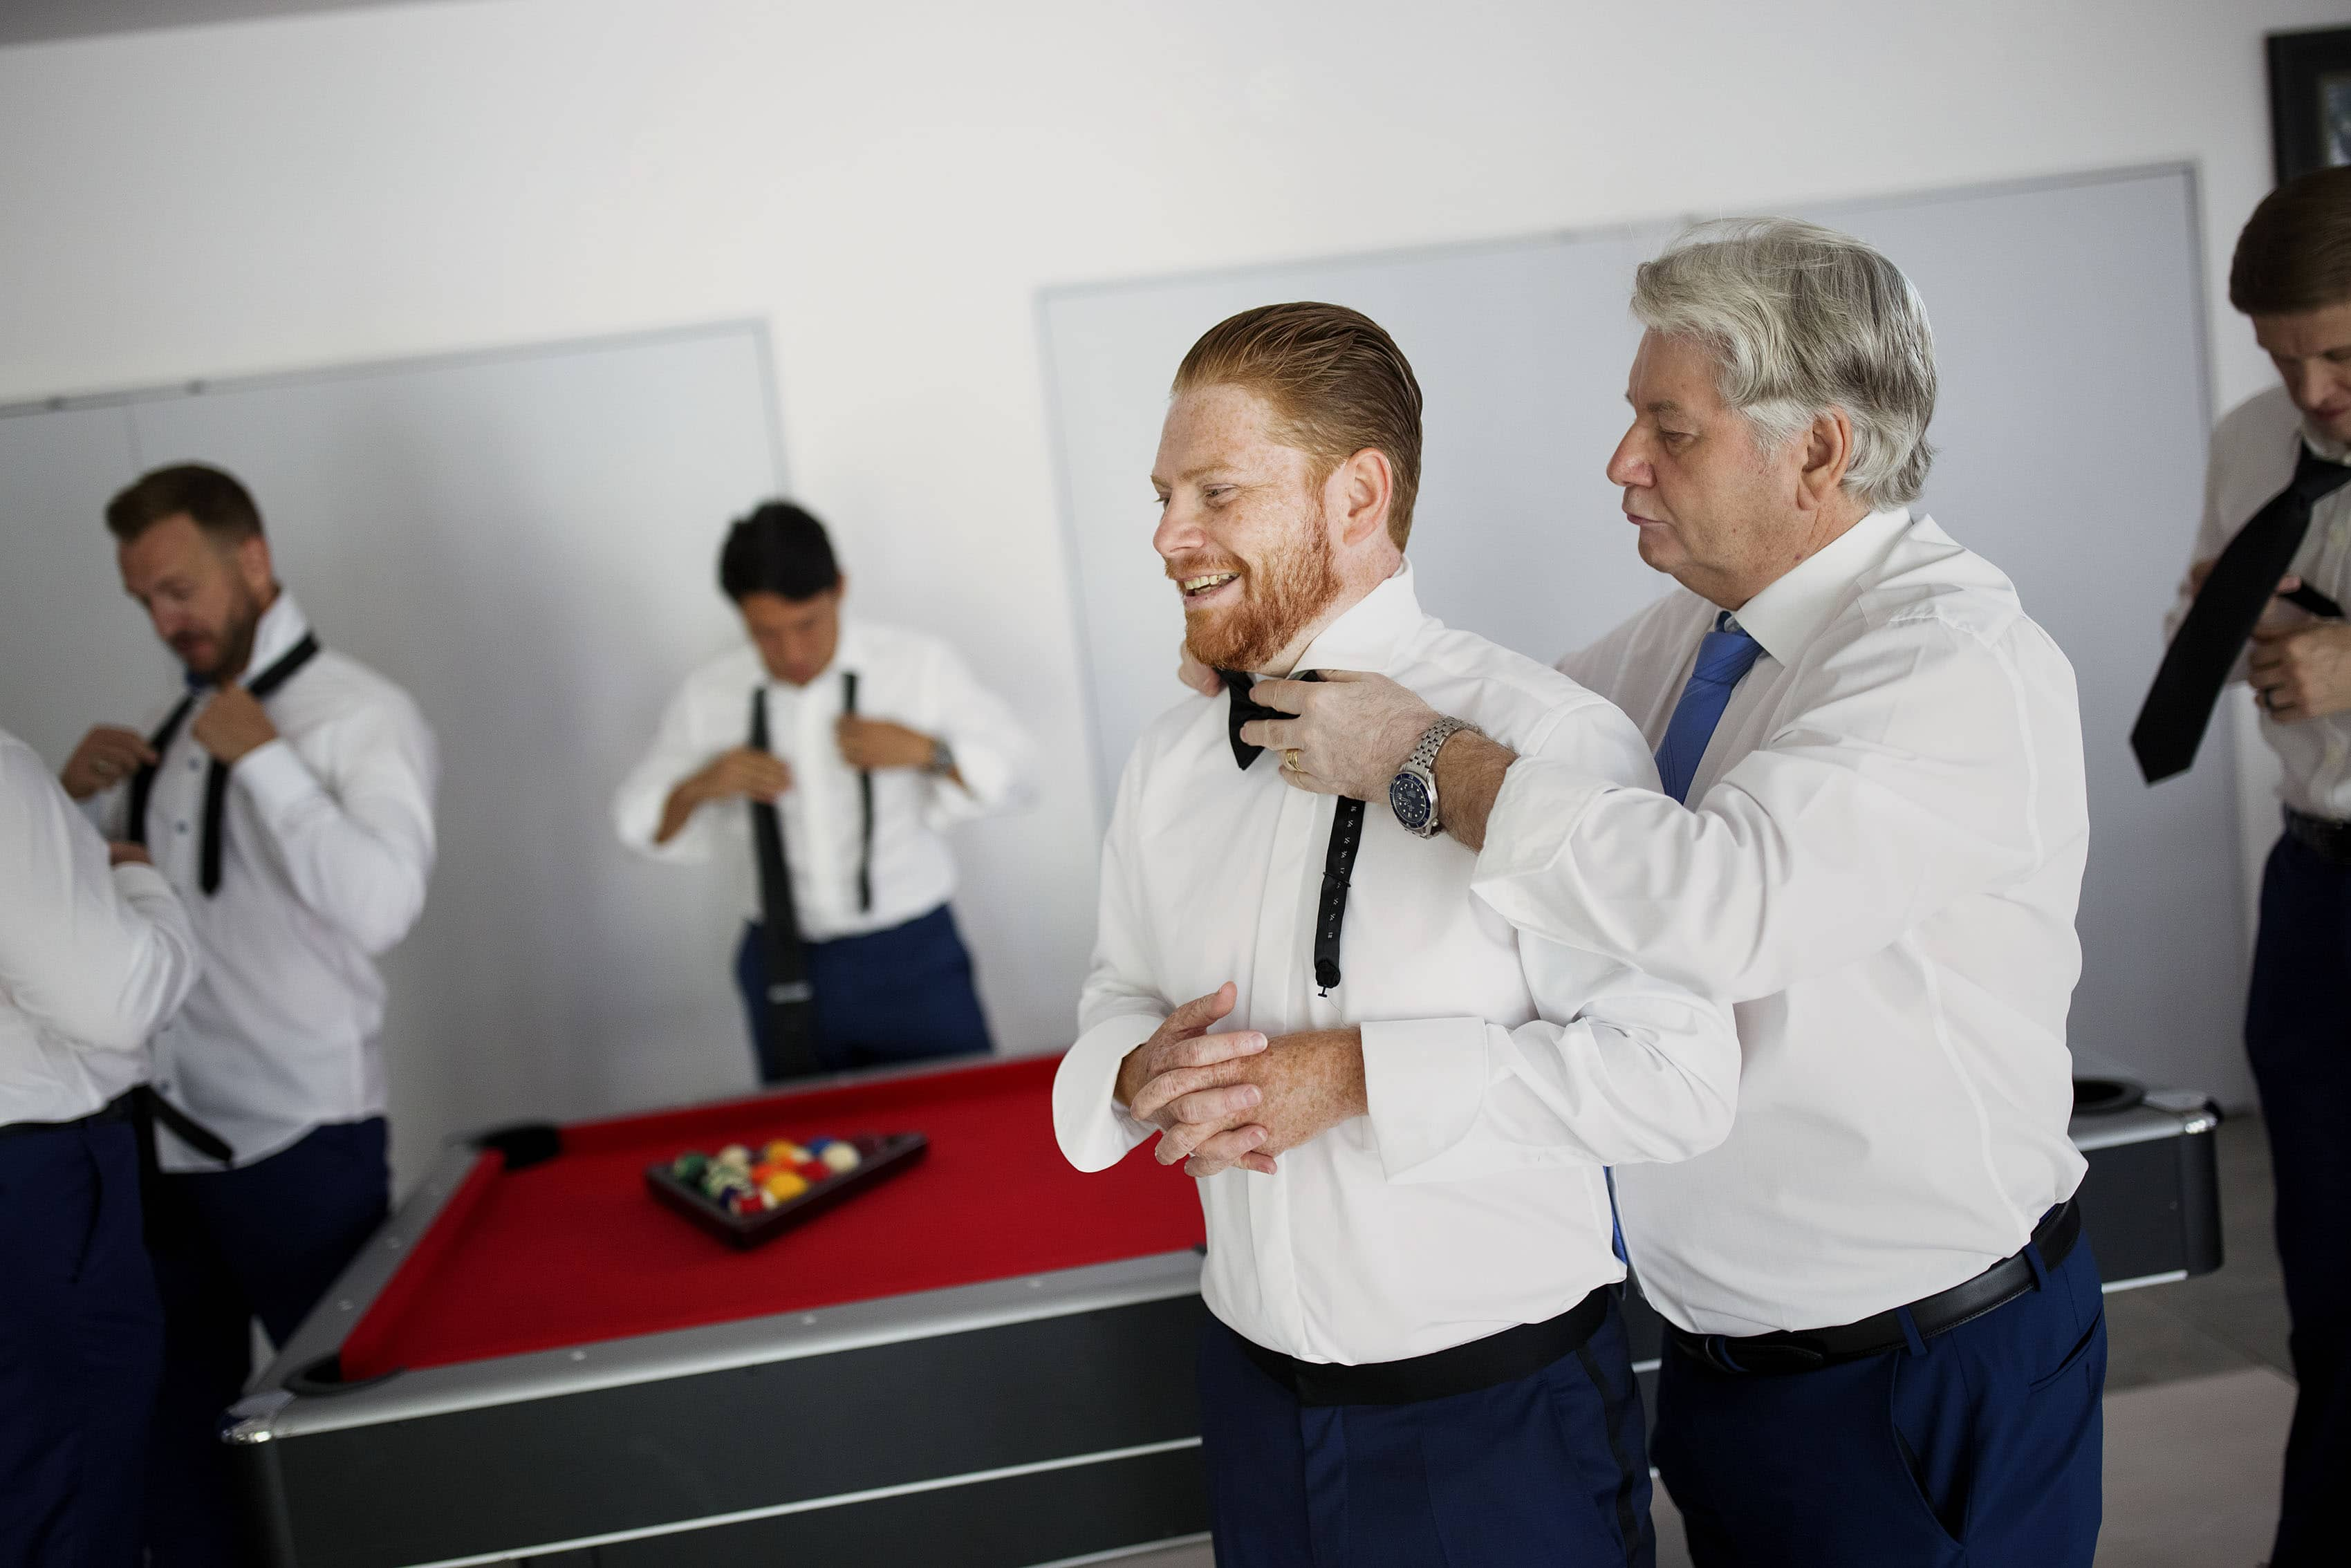 The groom gets some help with his tie